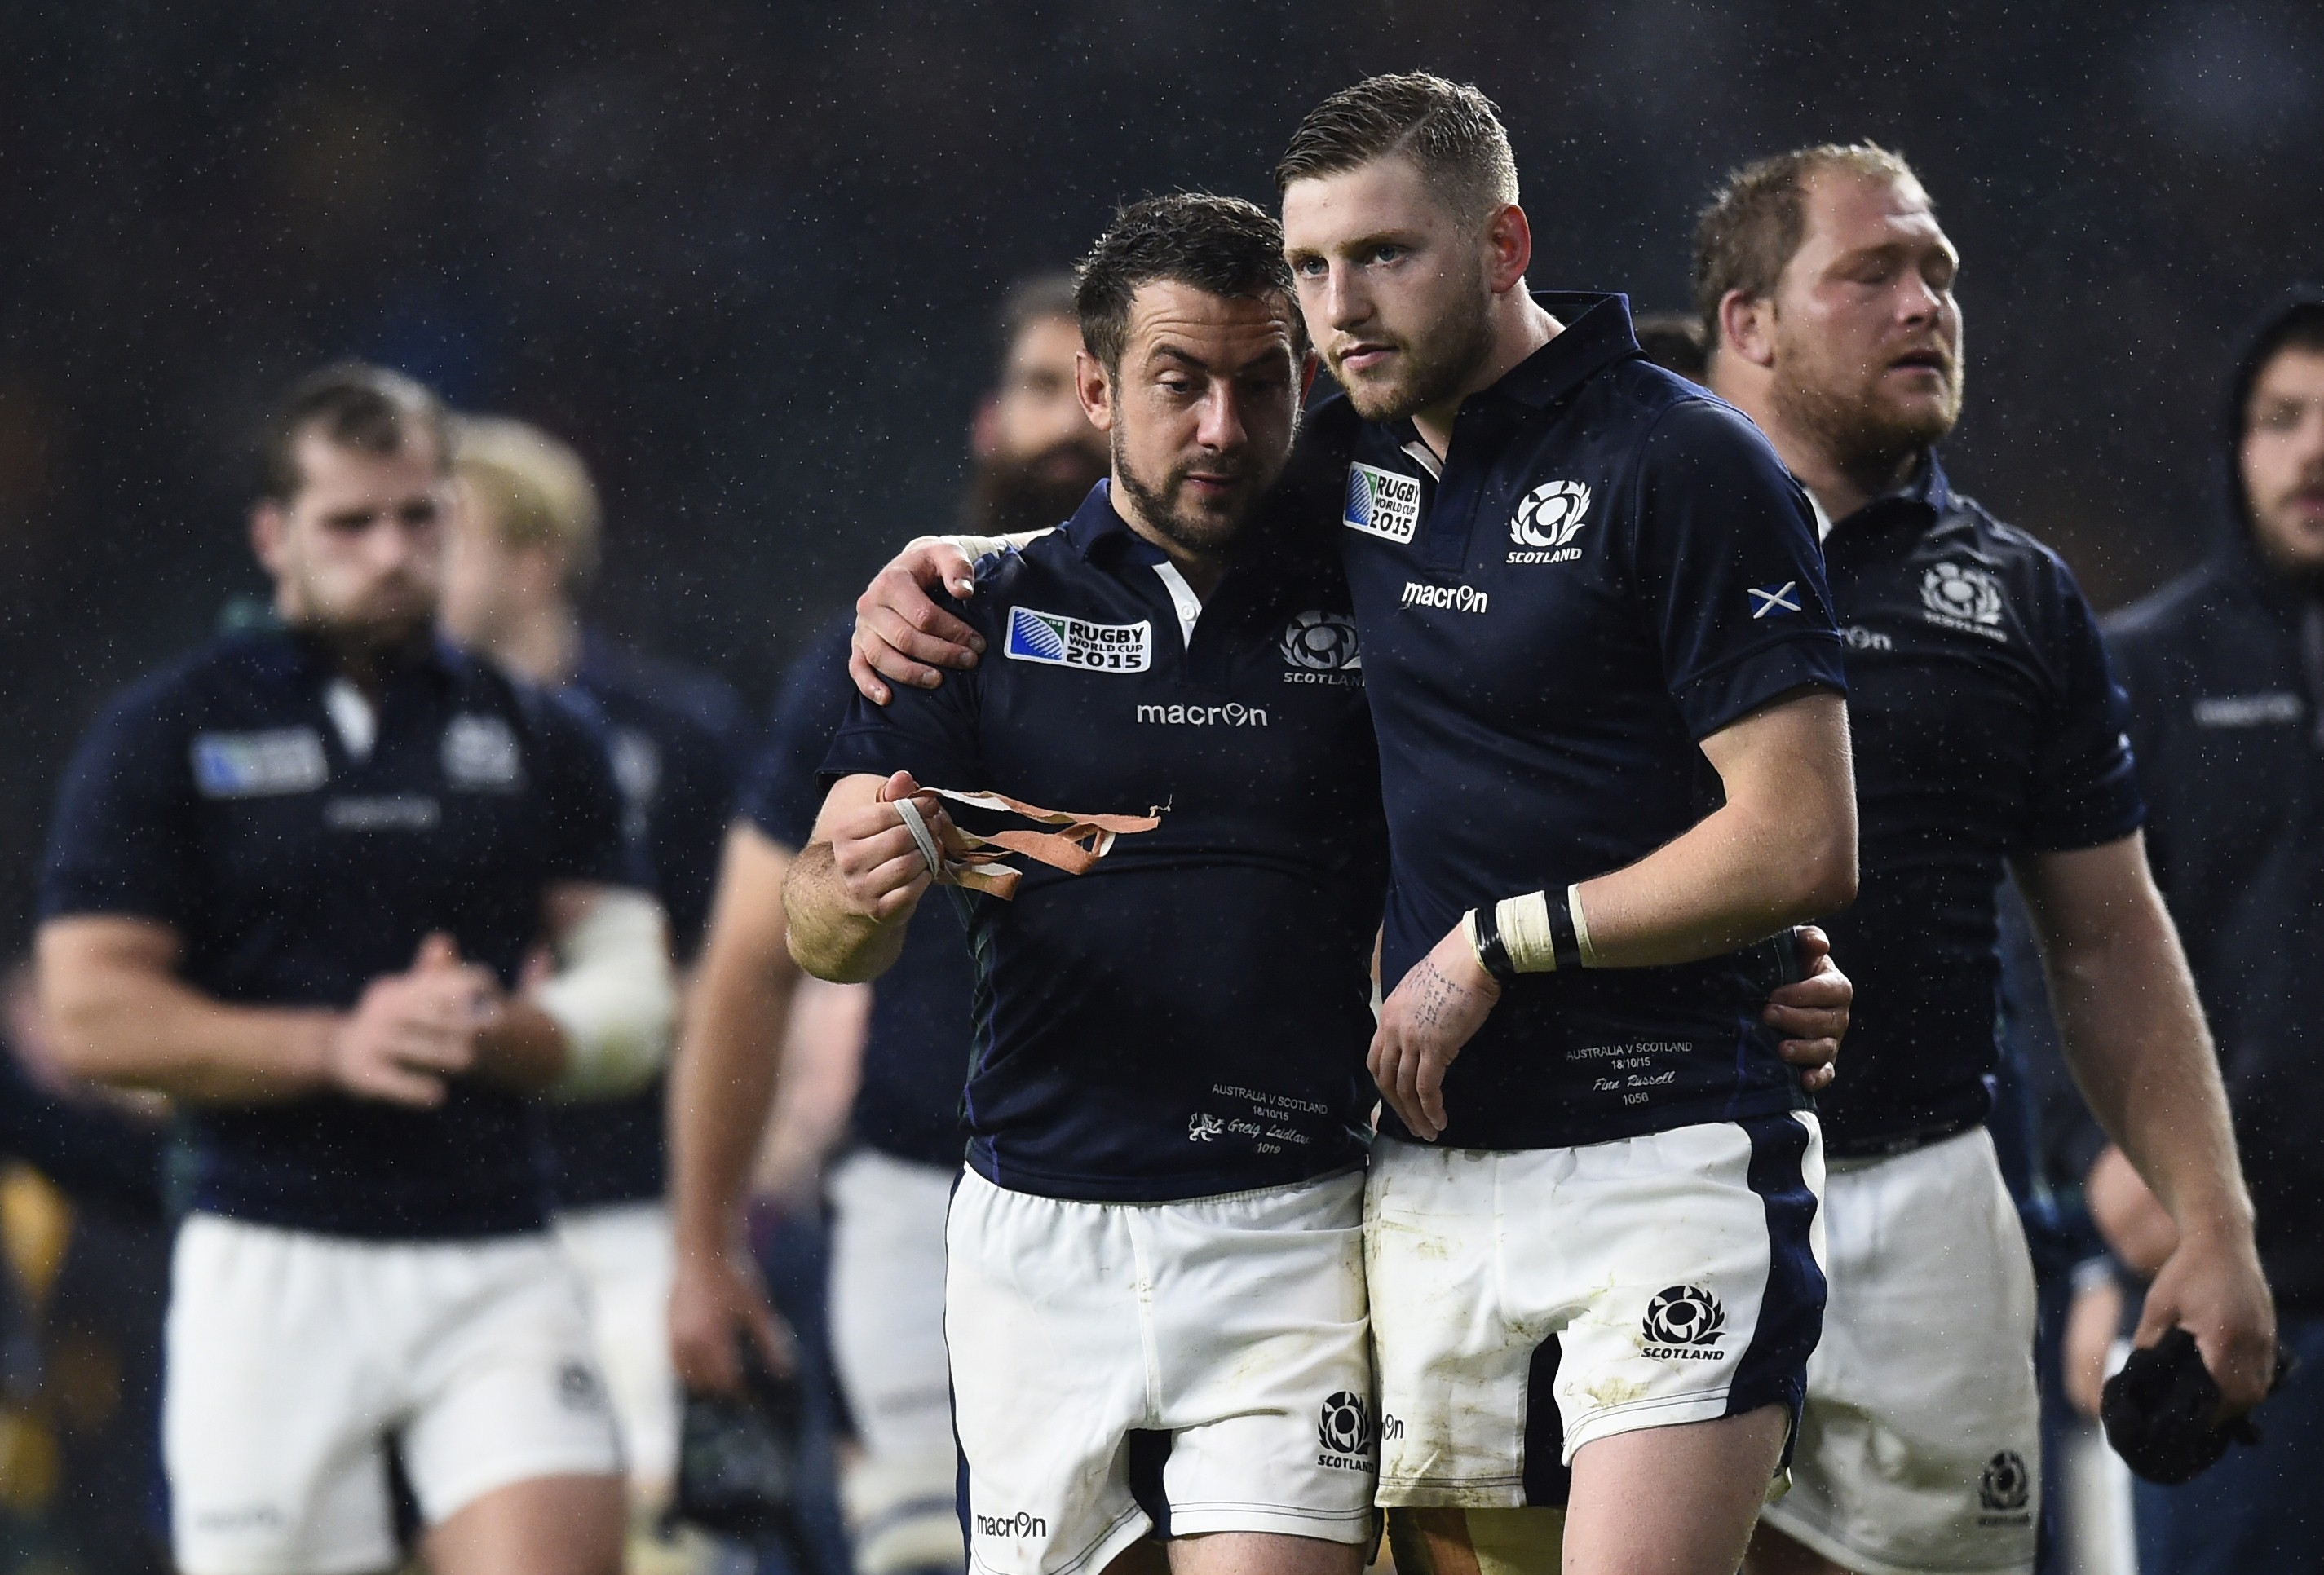 Scotland's Greig Laidlaw and Finn Russell at the end of the game